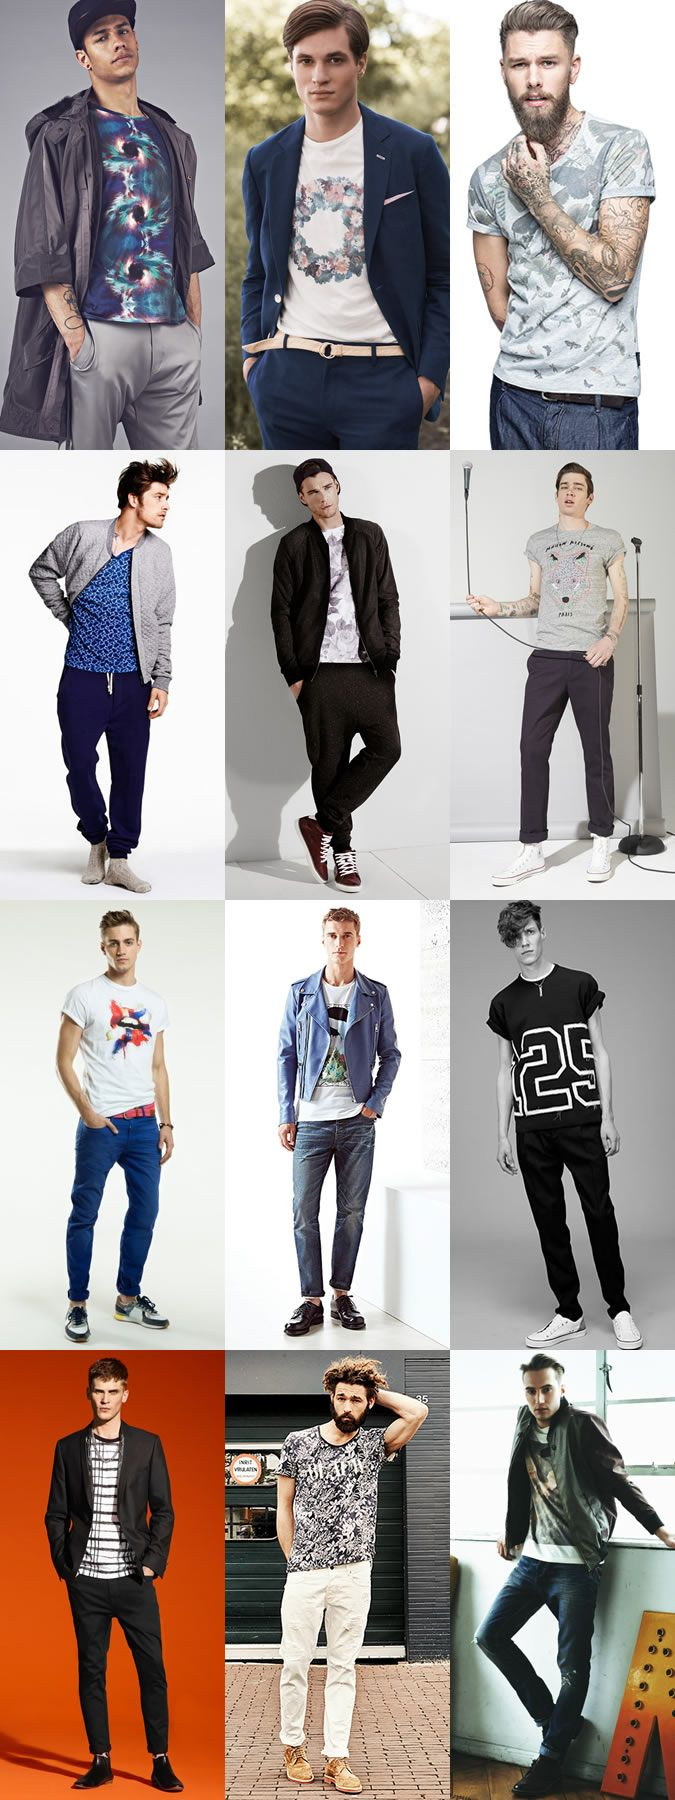 Men's Printed/Patterned Statement T-Shirts - Transitional Outfit Inspiration Lookbook